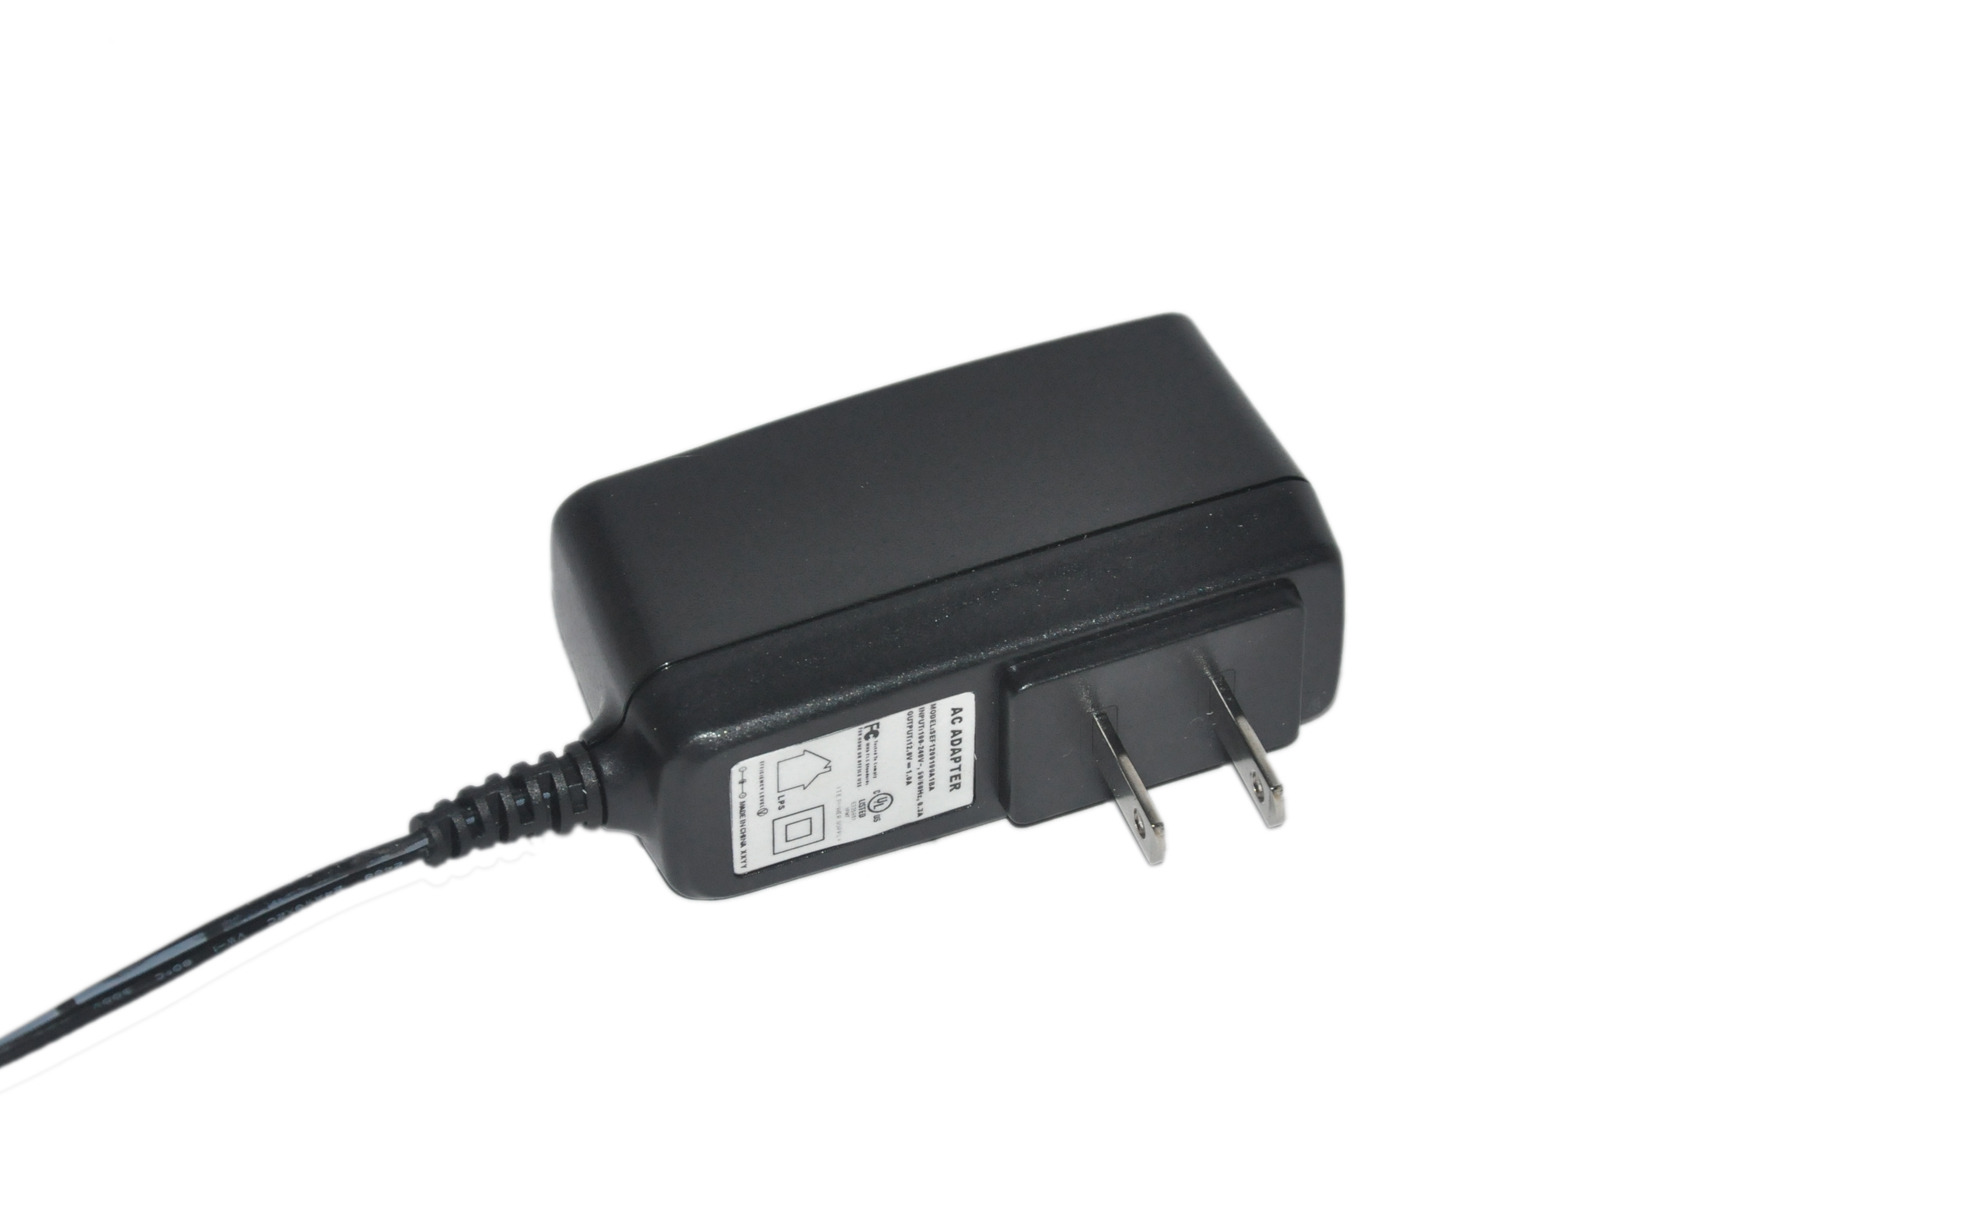 Hot selling mini usb power adapor for electronic appliances